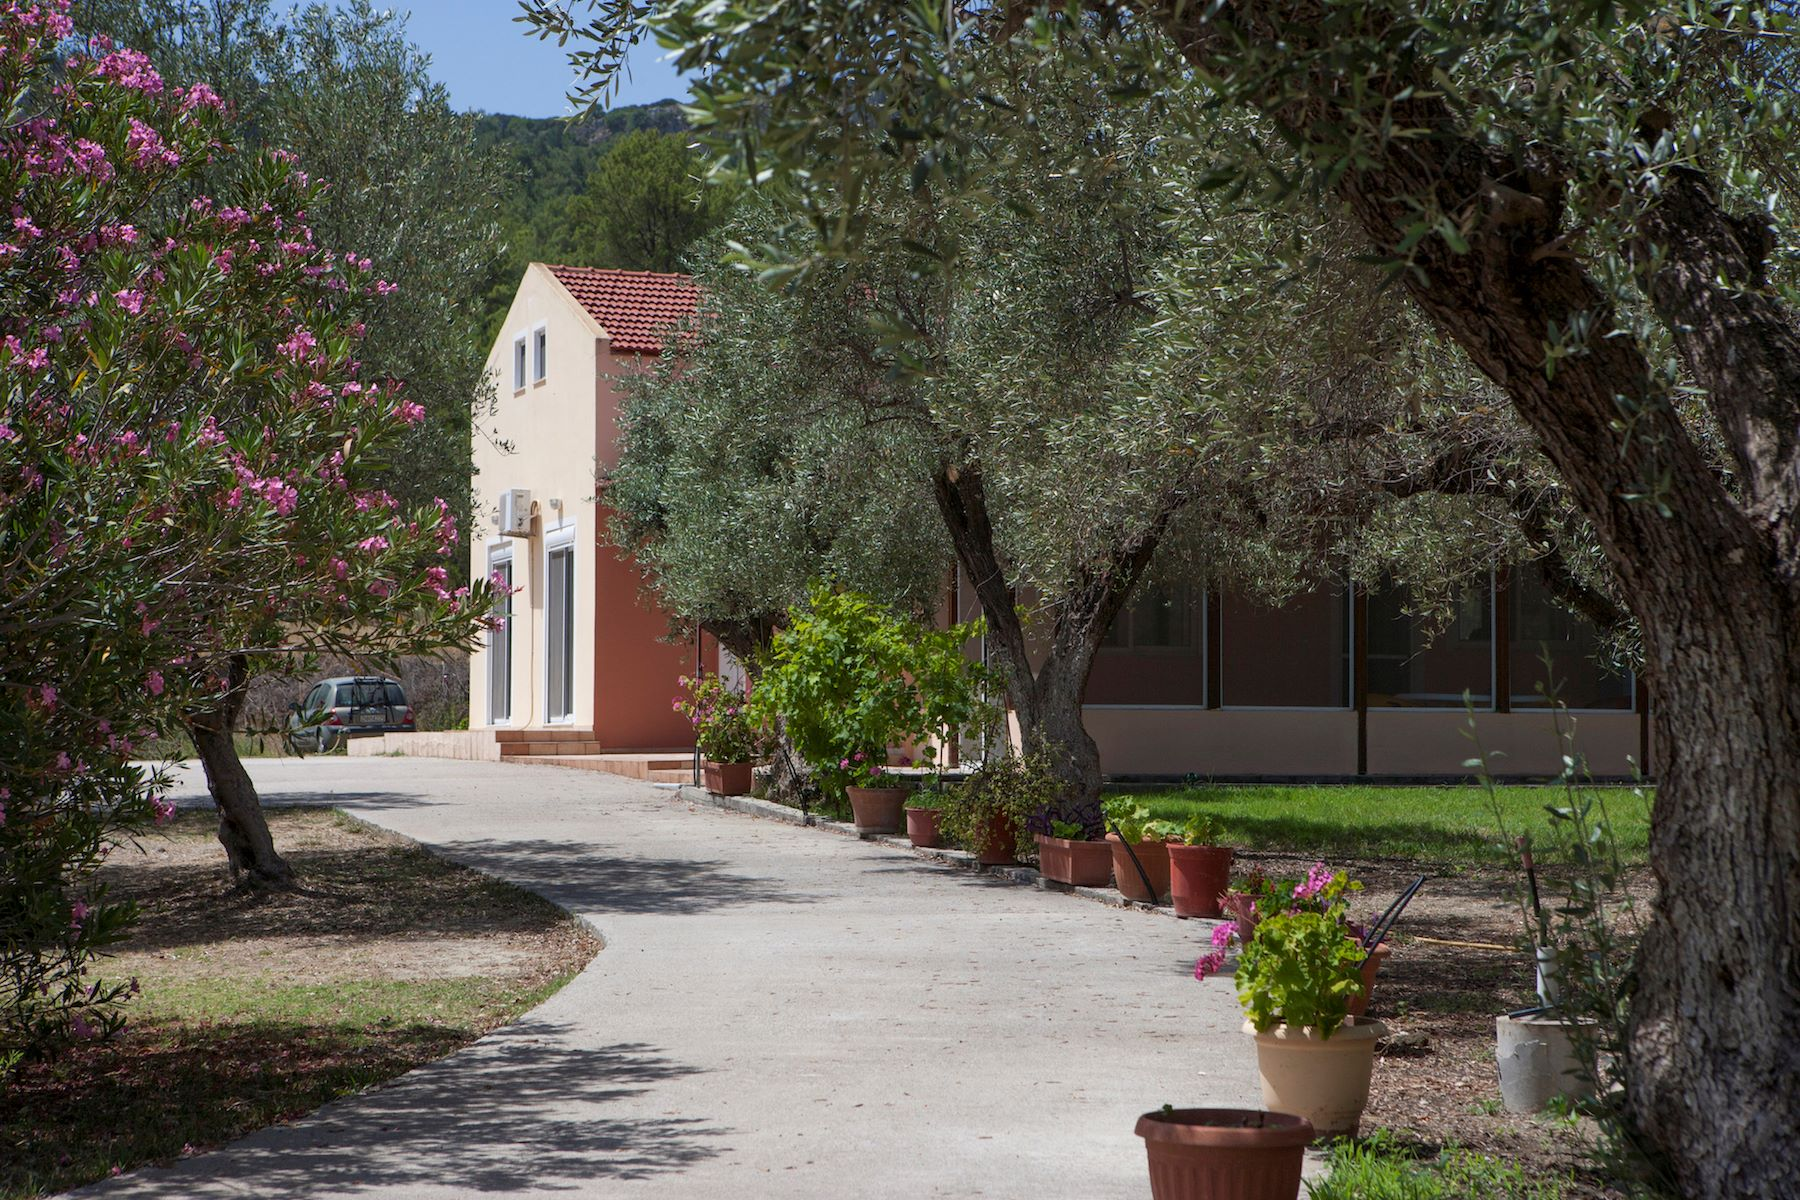 Single Family Home for Sale at Romantic Setting Kolymbia Romantic Setting Rhodes, Southern Aegean, 85102 Greece